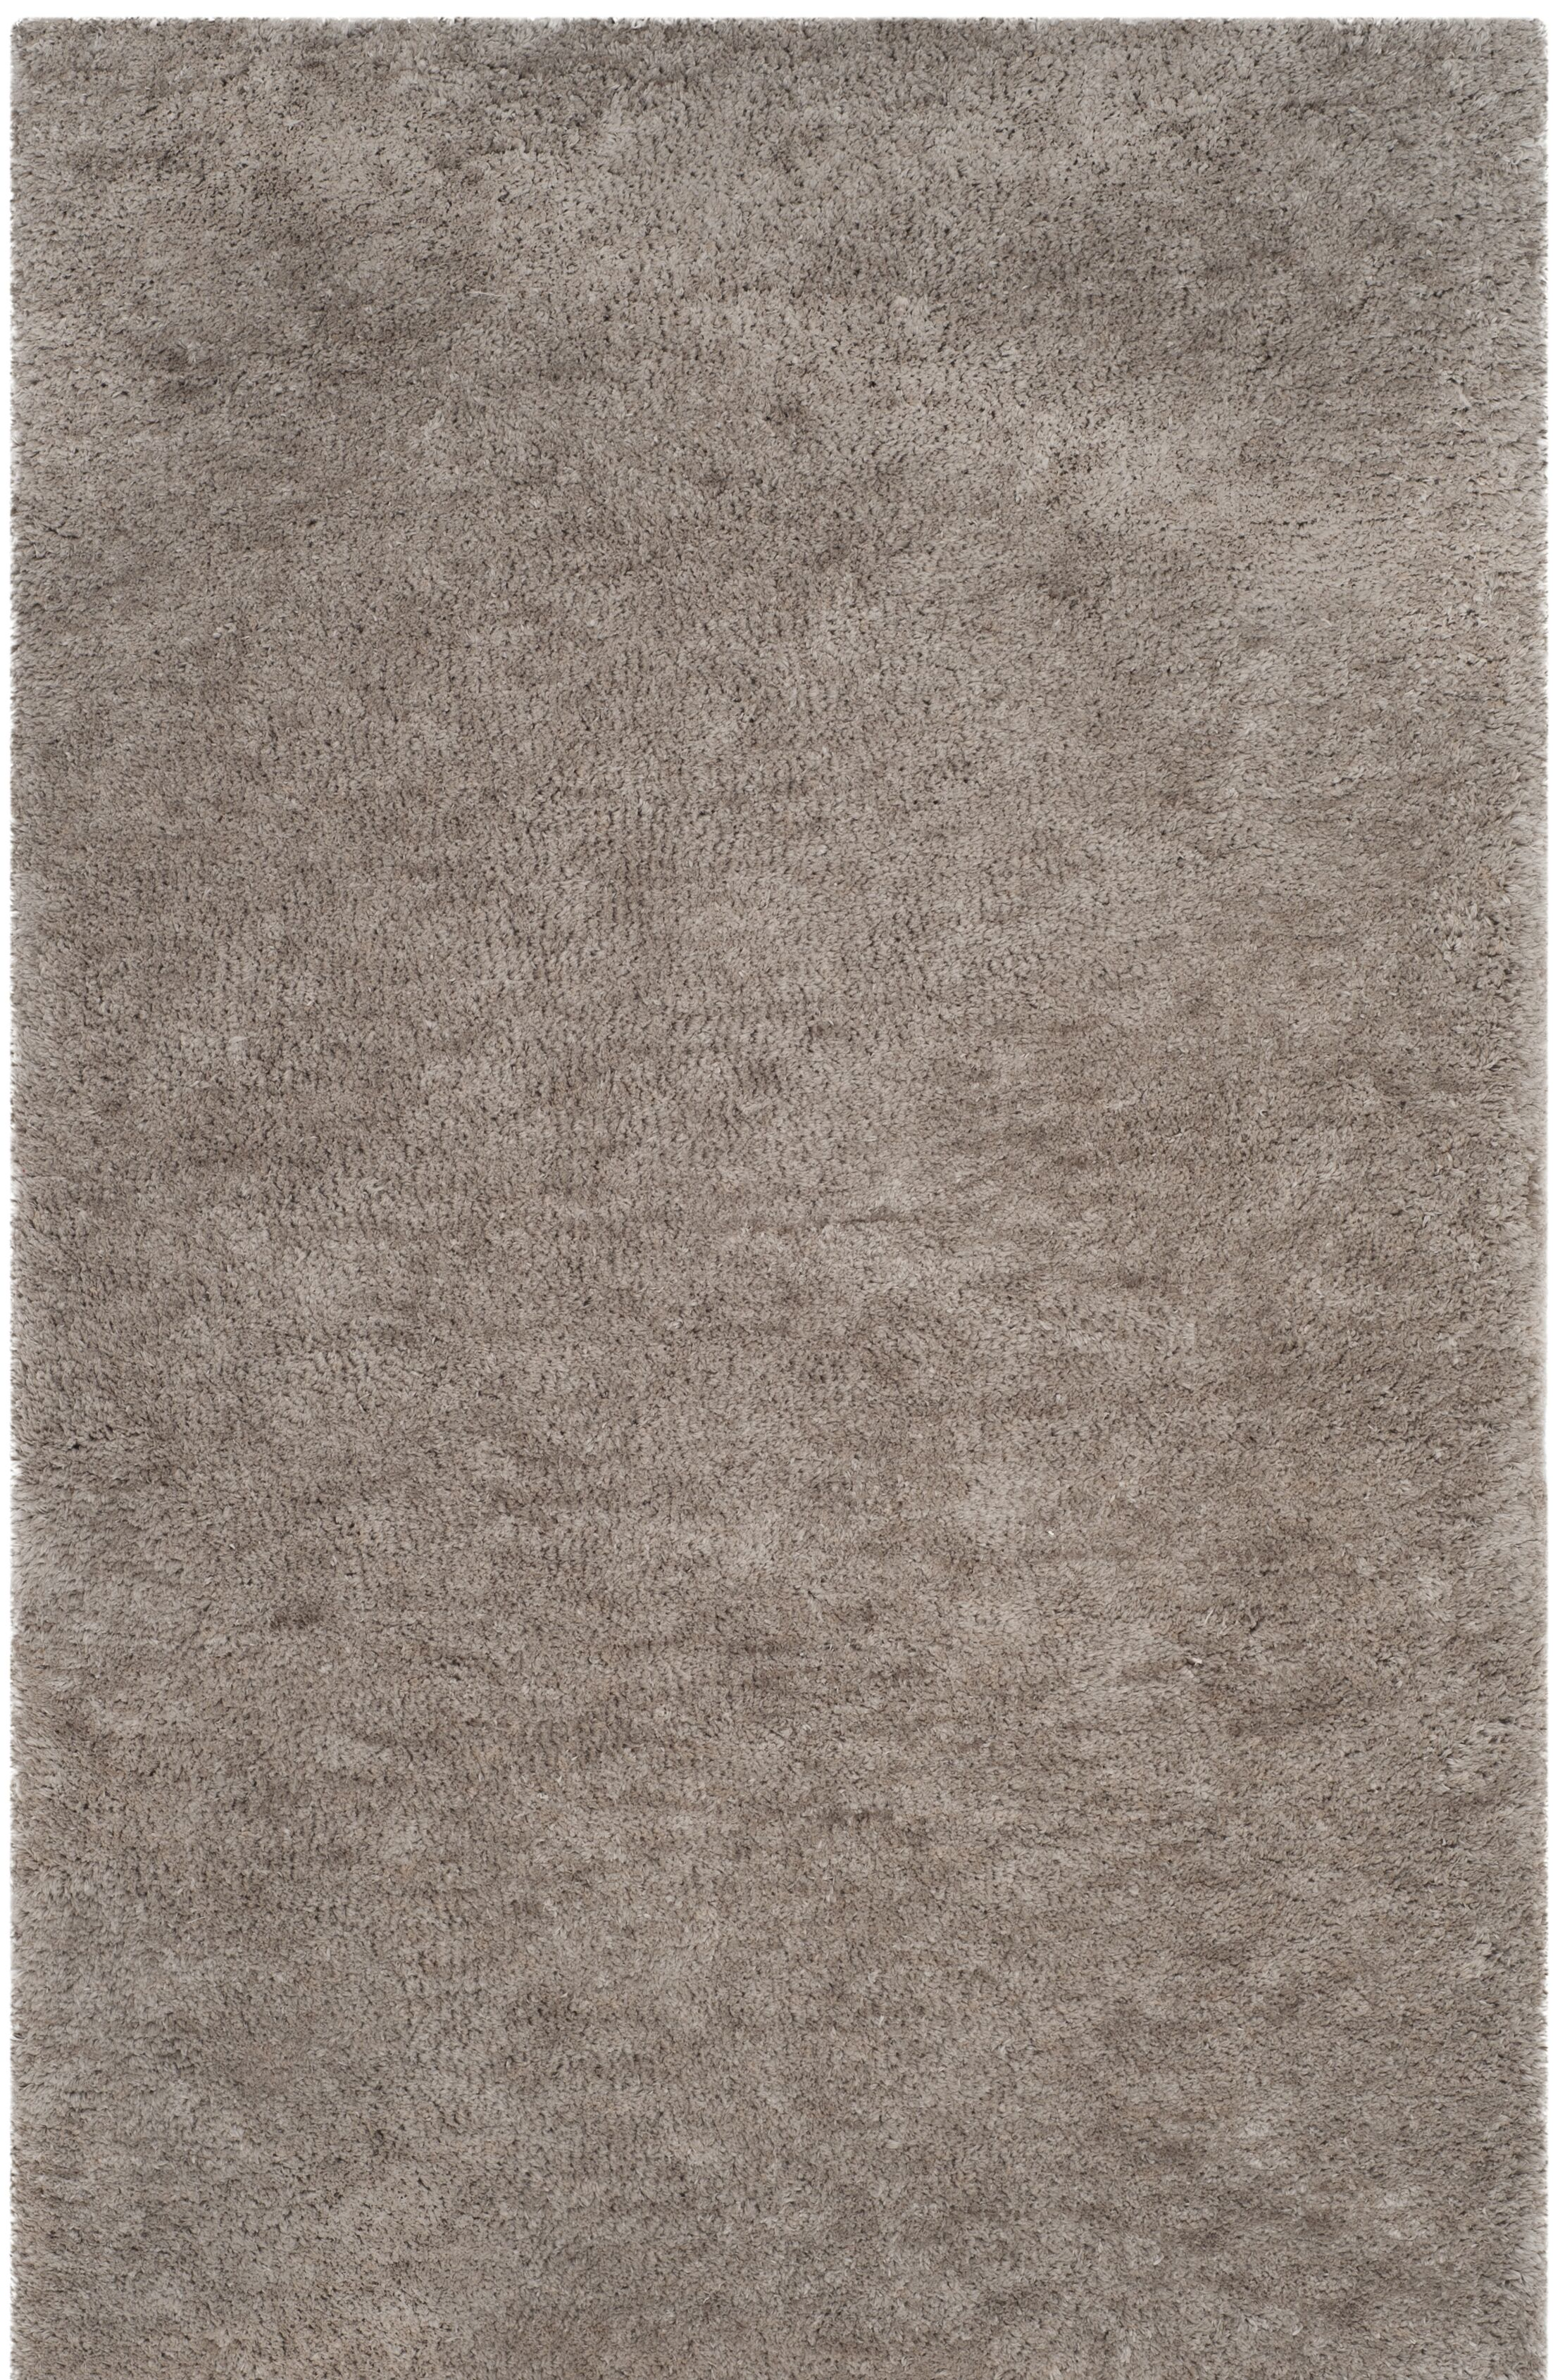 Detweiler Hand-Tufted Gray Area Rug Rug Size: Rectangle 4' x 6'